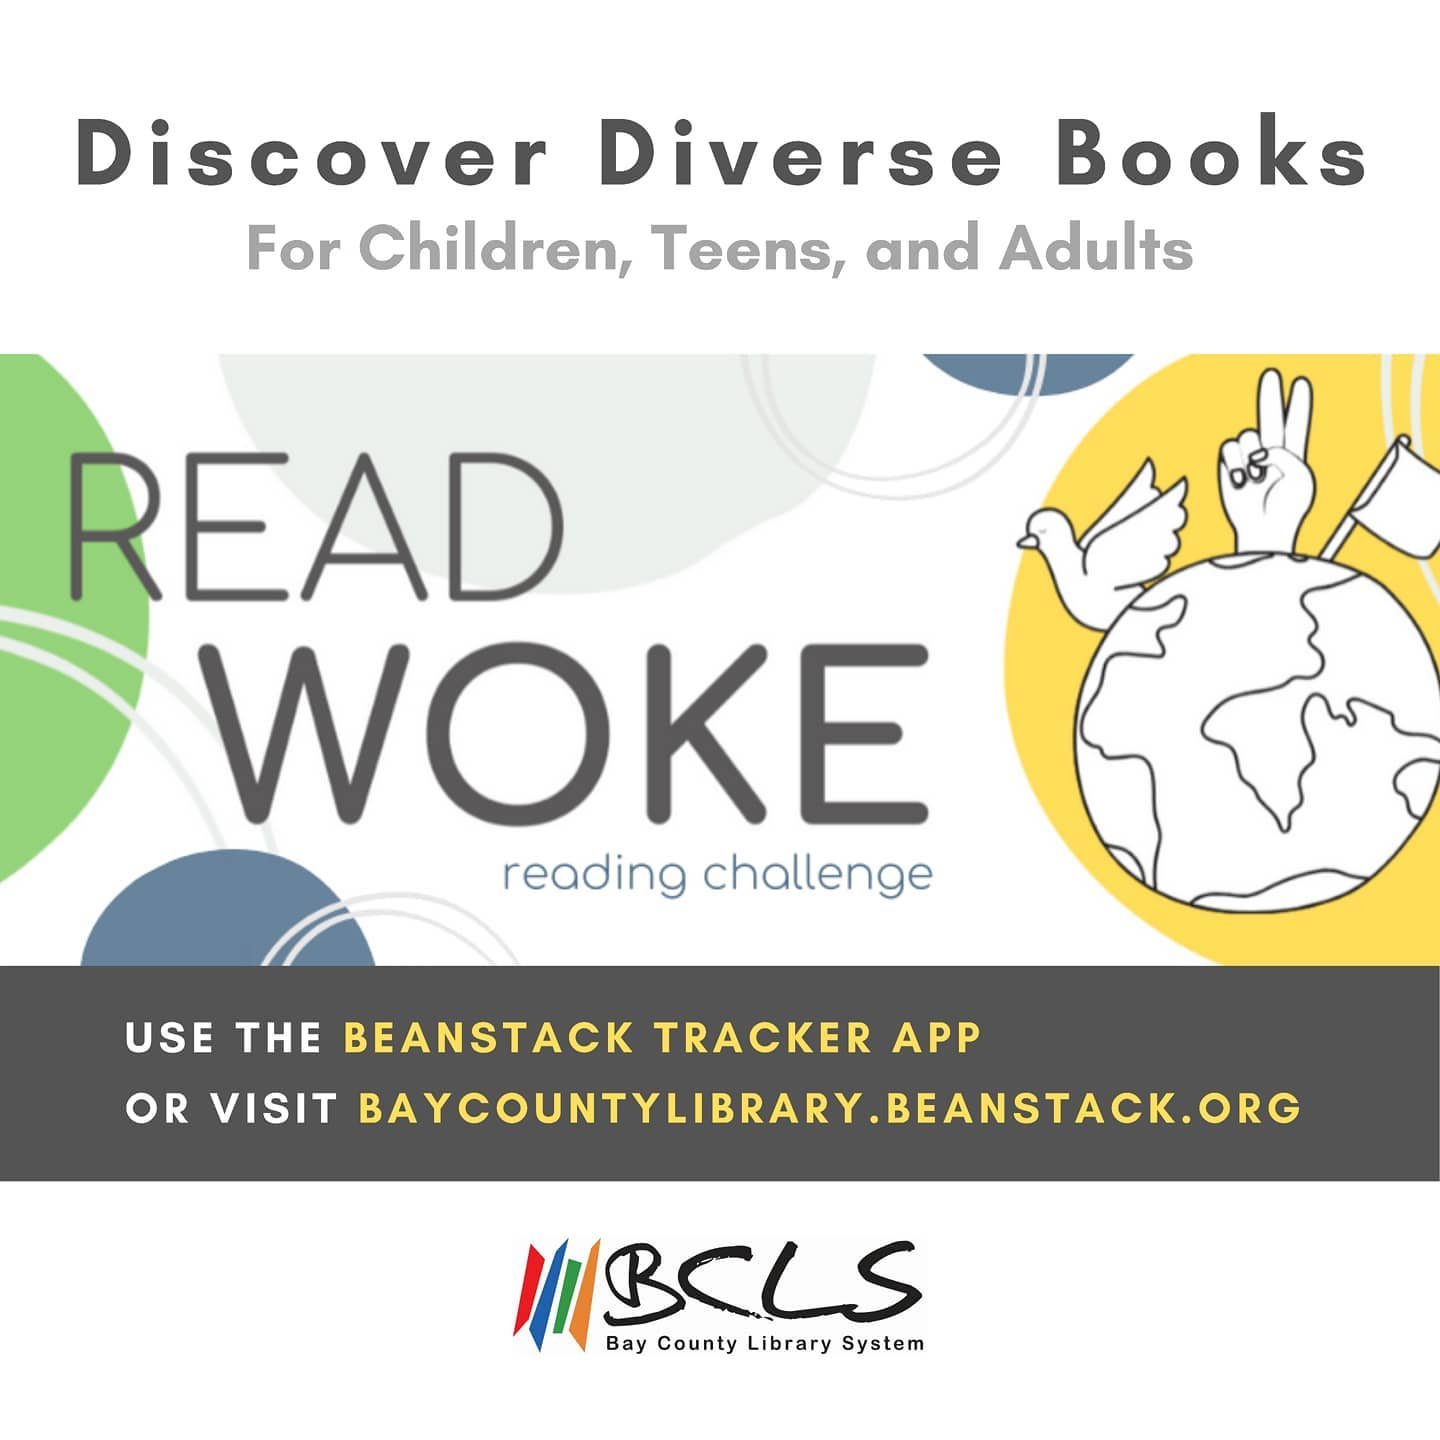 Read Woke reading challenge